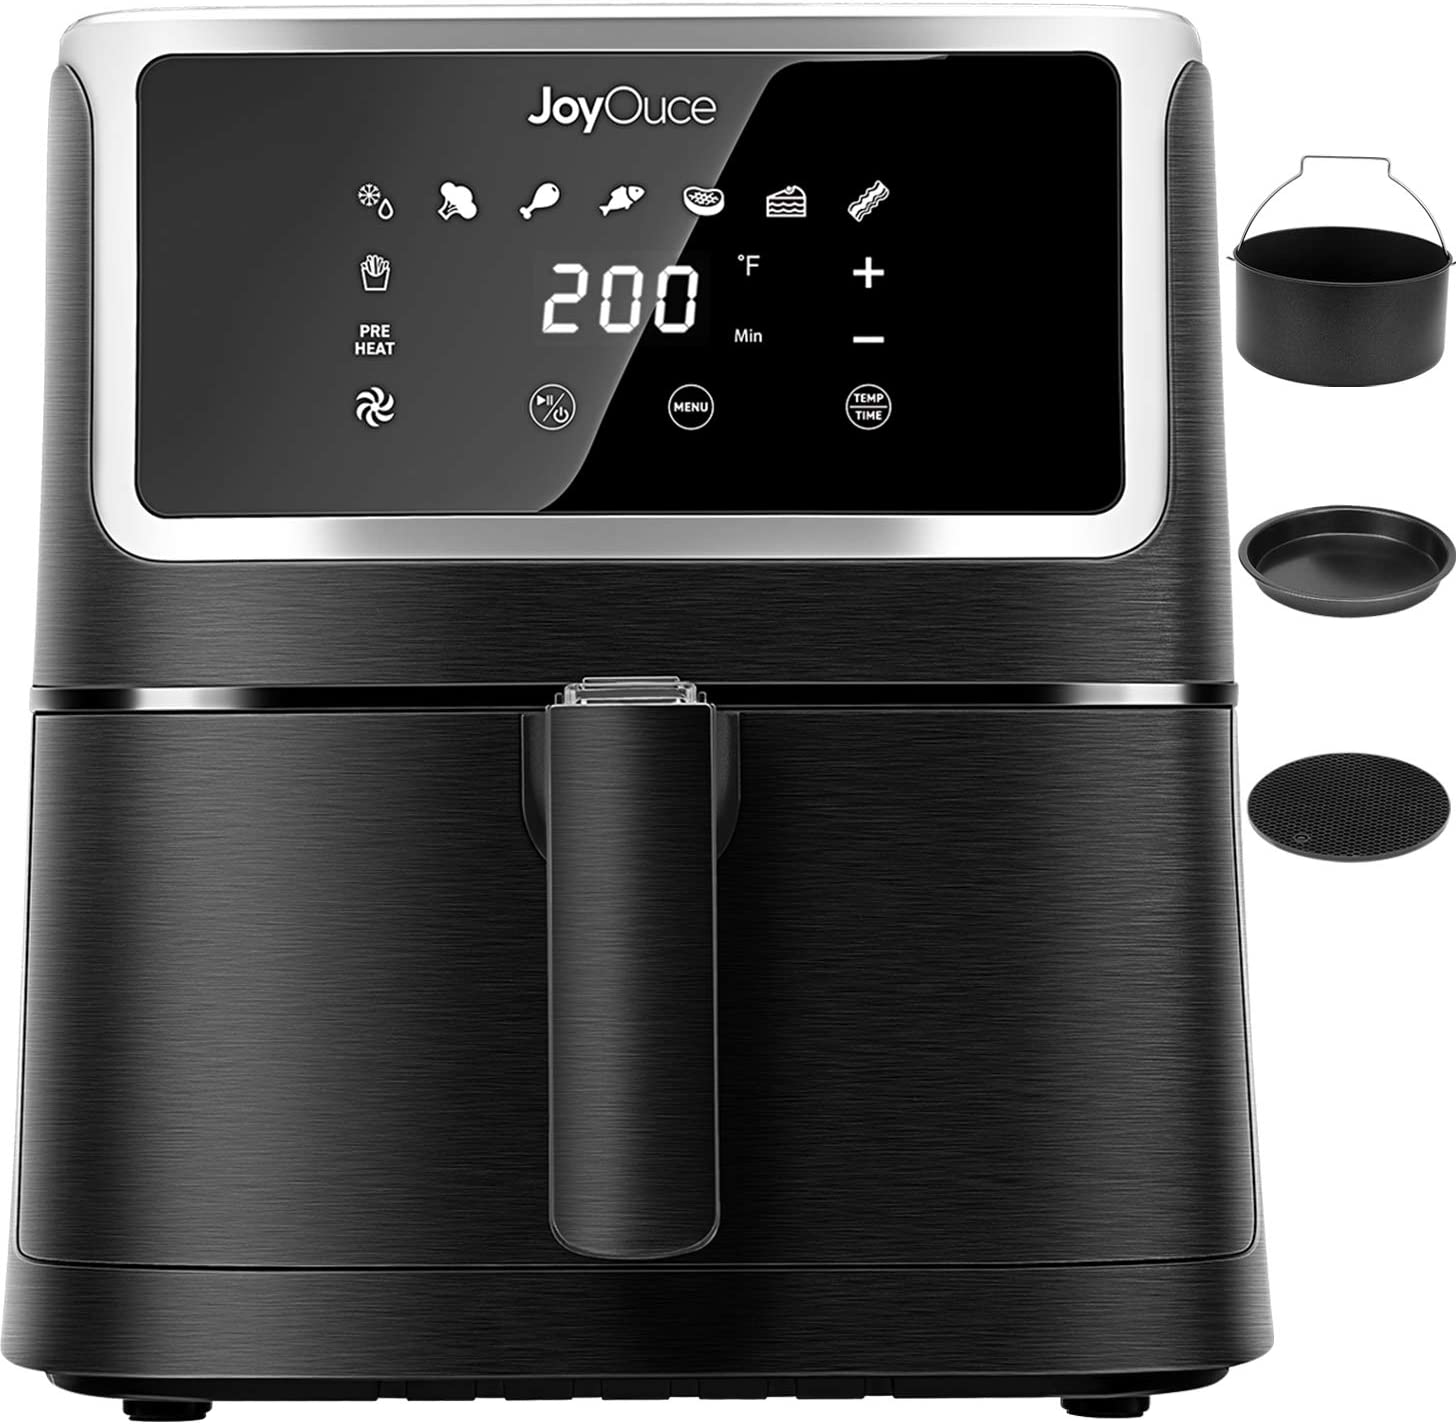 JOYOUCE Air Fryer XL with 3 Extra Air Fryer Accessories,5.8 QT Large Air Fryer Oven Smart Touch Screen with 8 Presets Air Fryer Combo for Roast/Bake/Grilling Power 1700W